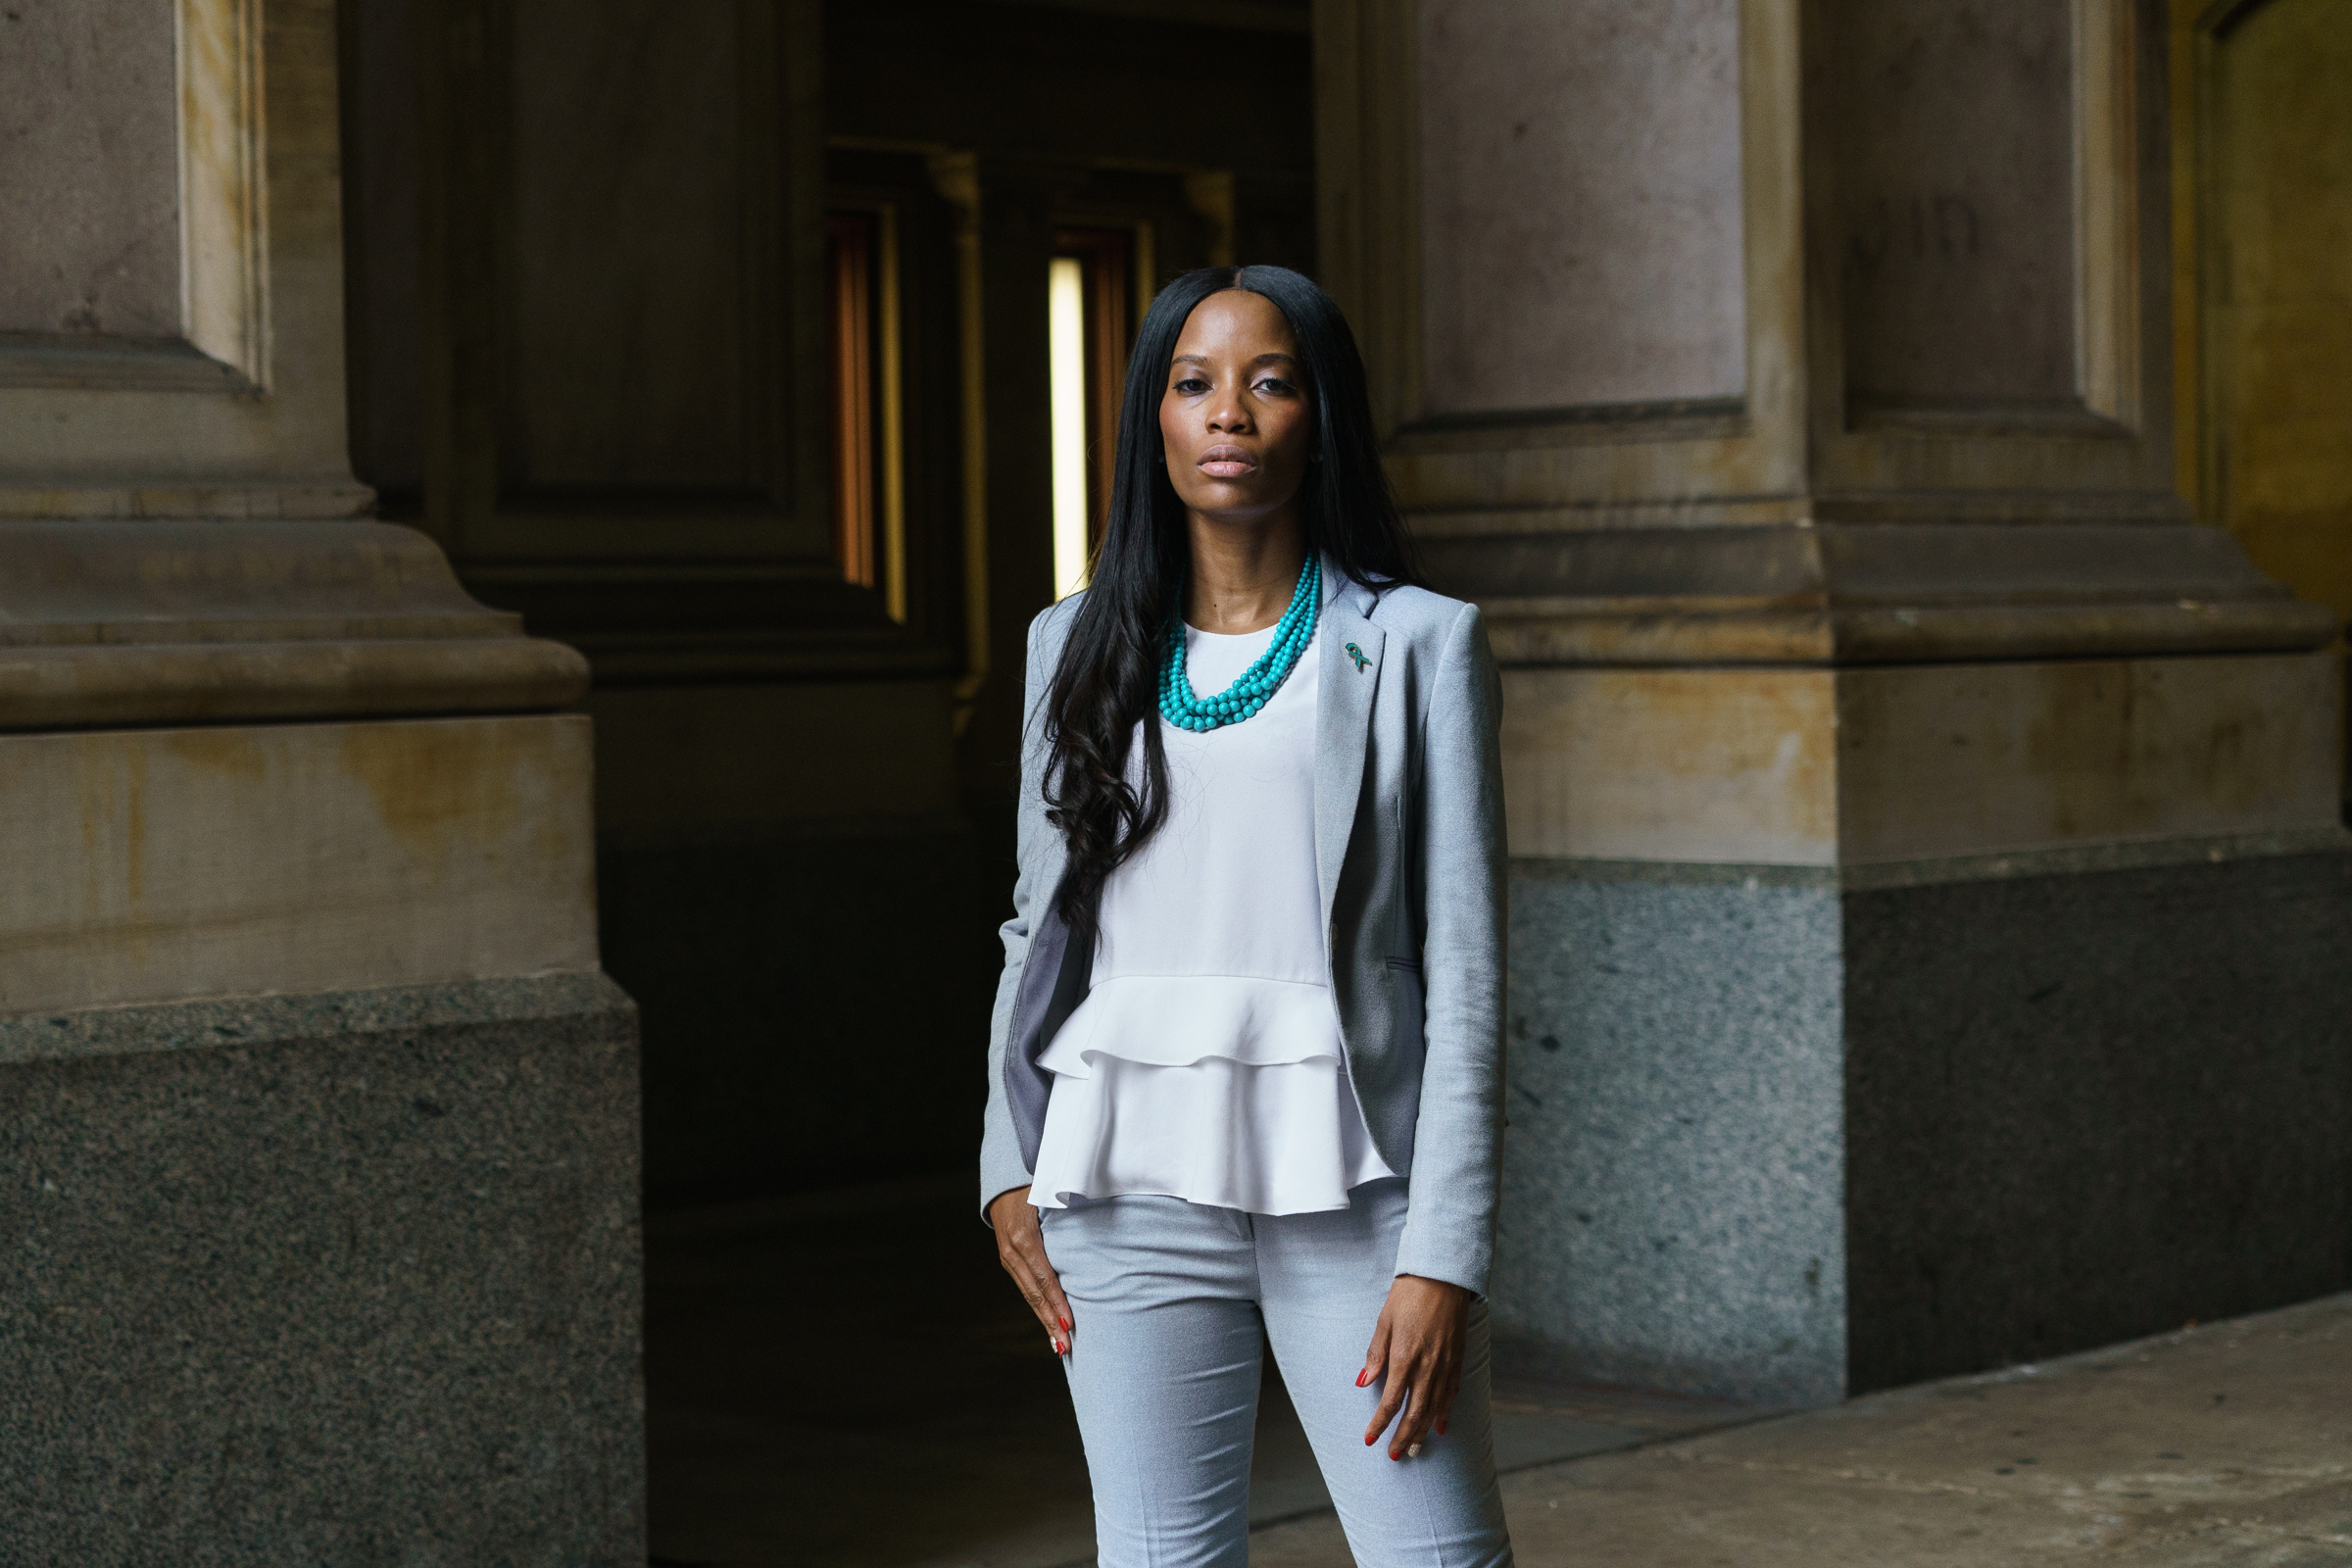 fb99d89198 'I suffered in silence for 12 years': Rape survivor helps black women talk  about sexual violence